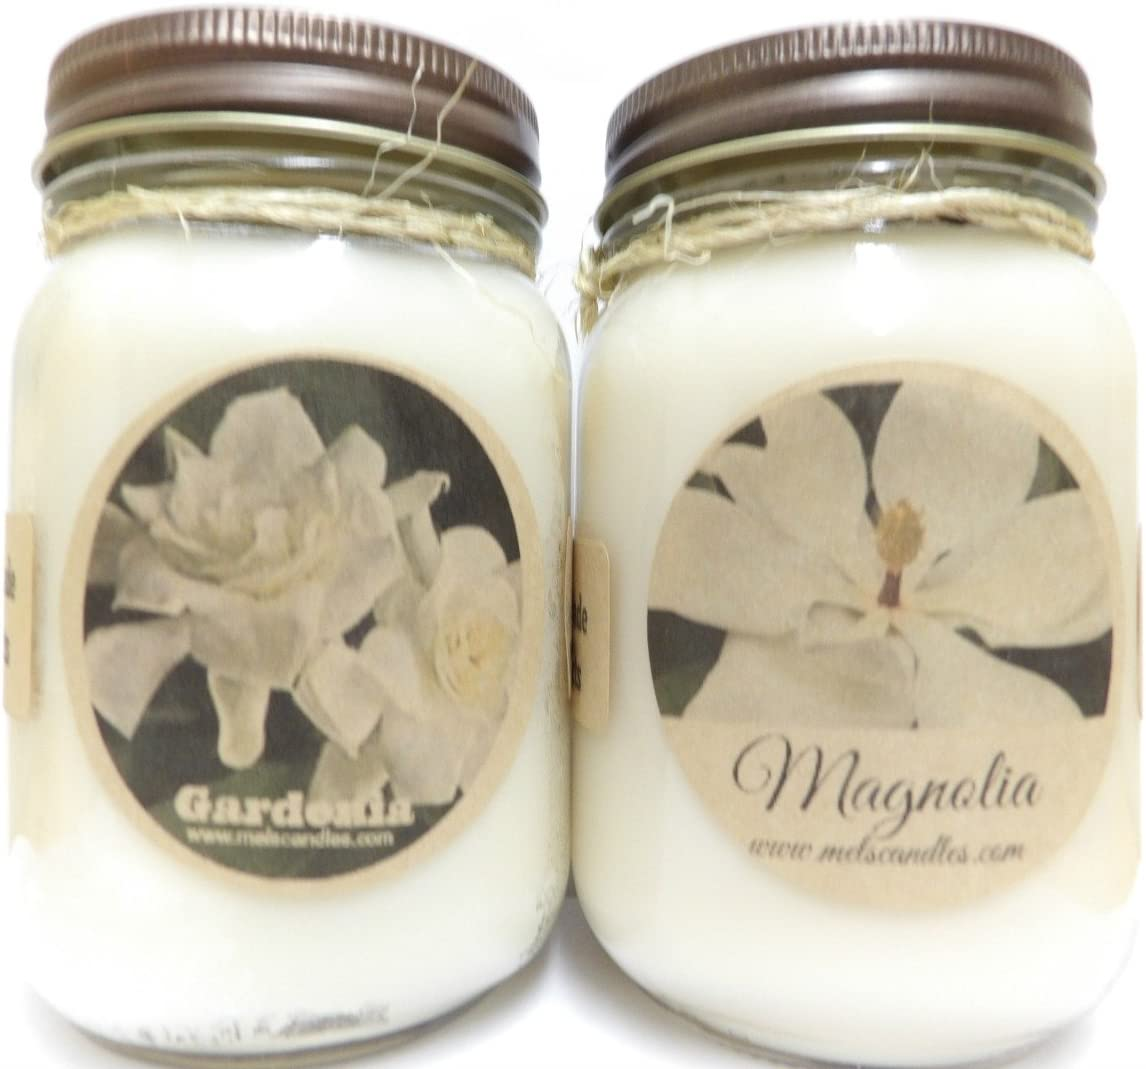 Gardenia & Magnolia Set of Two 16oz Country Jar All Natural Soy Candles- Approximate Burn Time 144 Hours Each